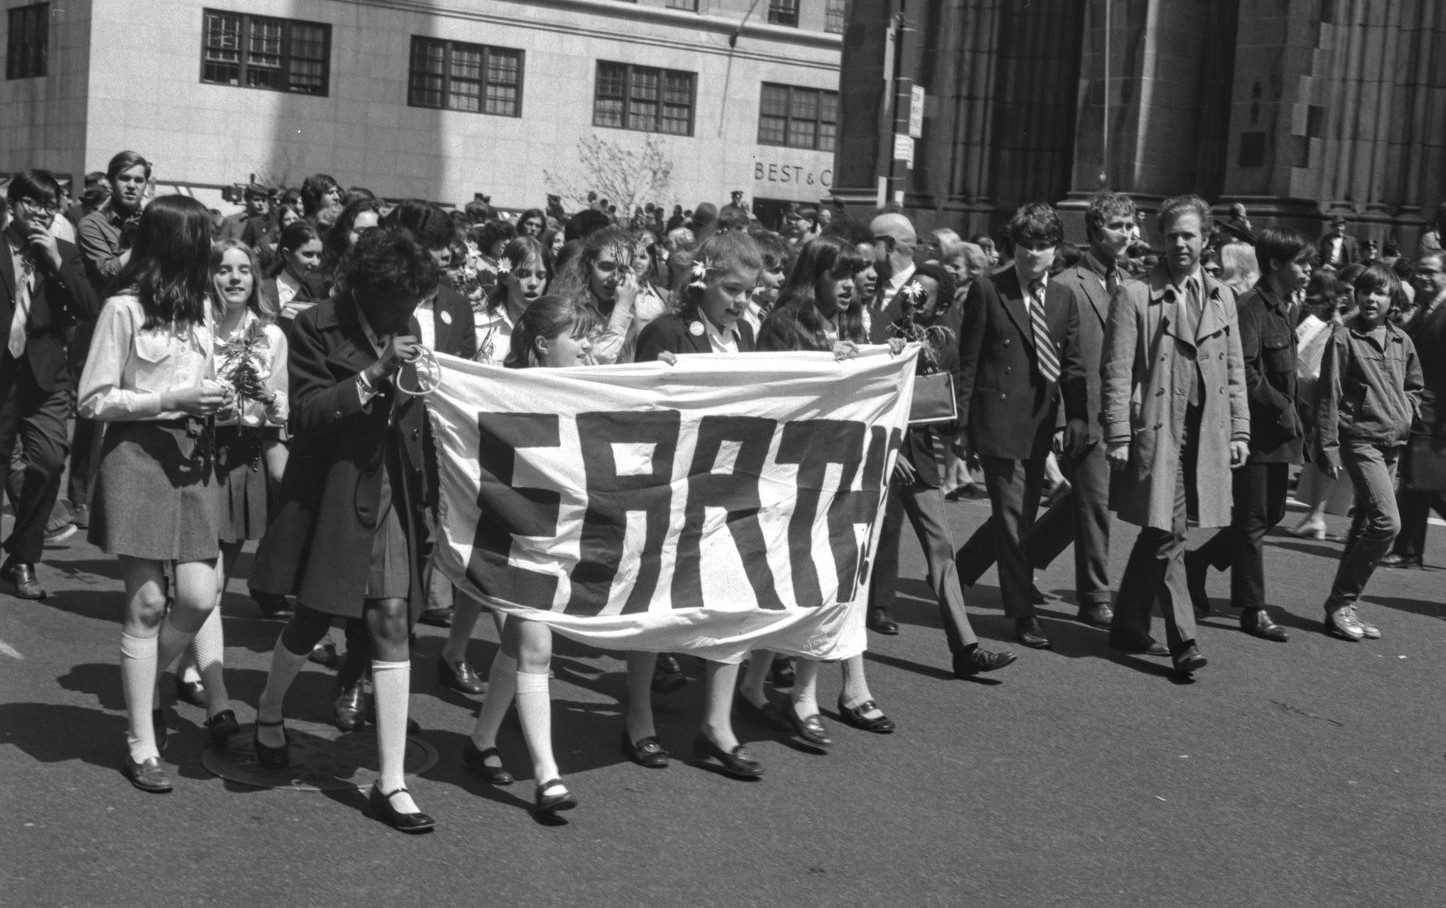 Earth Day 1970 - March on NYC's 5th Avenue